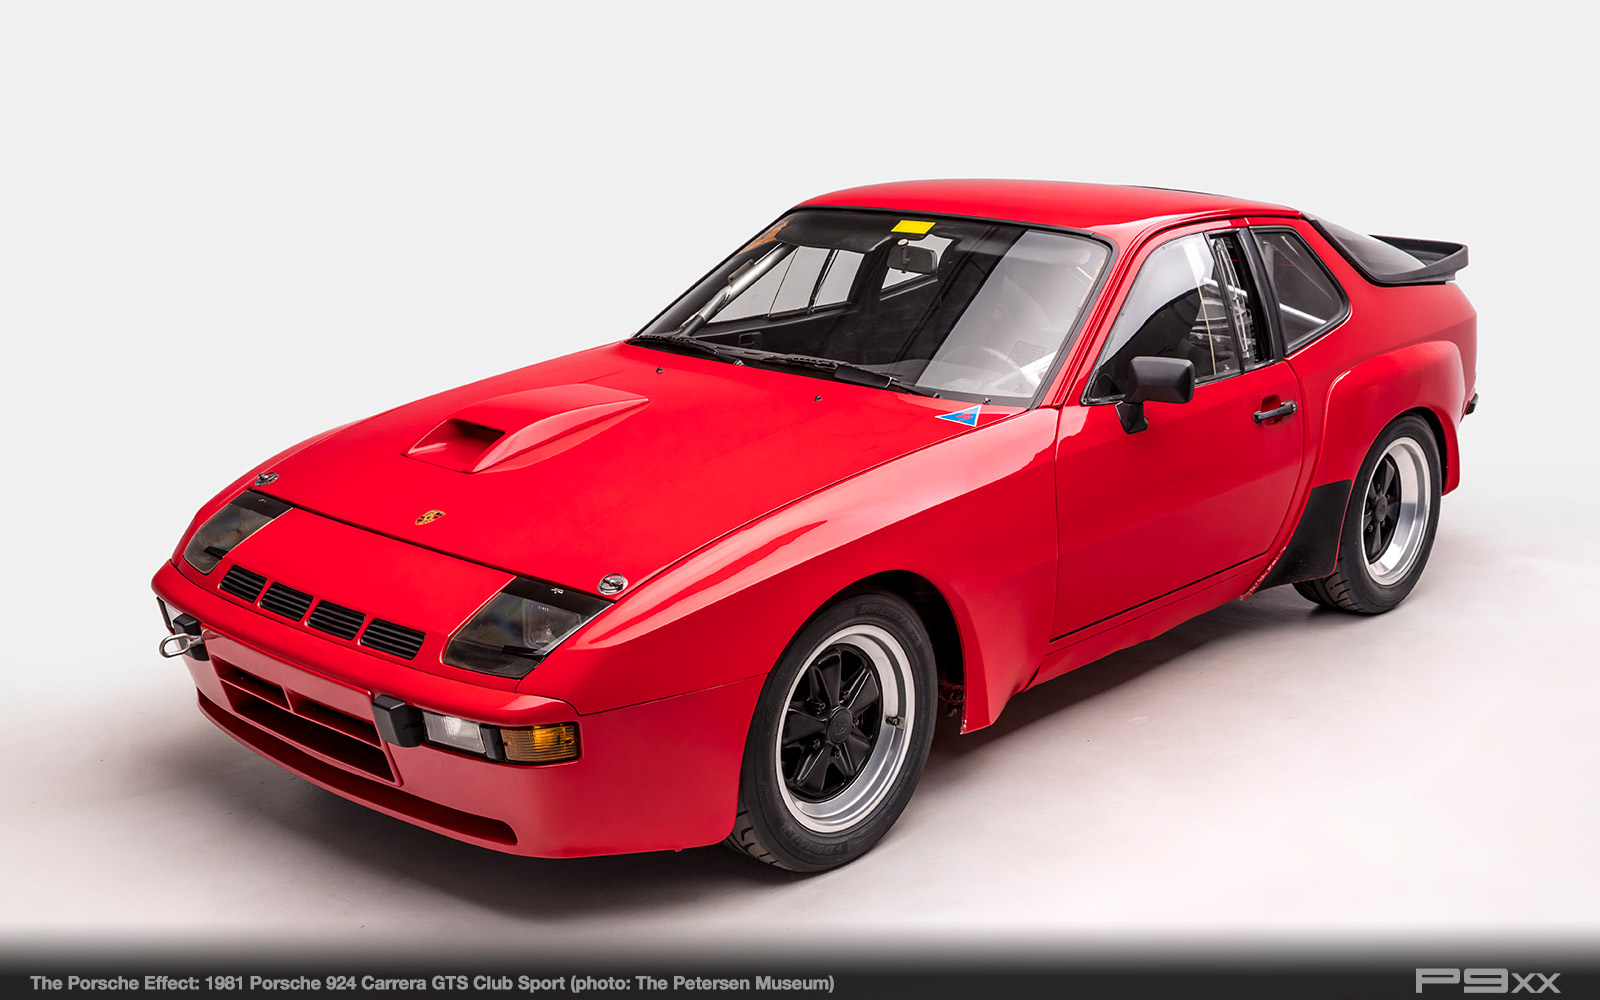 1981-924-Carrera-GTS-Club-Sport-Petersen-Automotive-Museum-The-Porsche-Effect-413